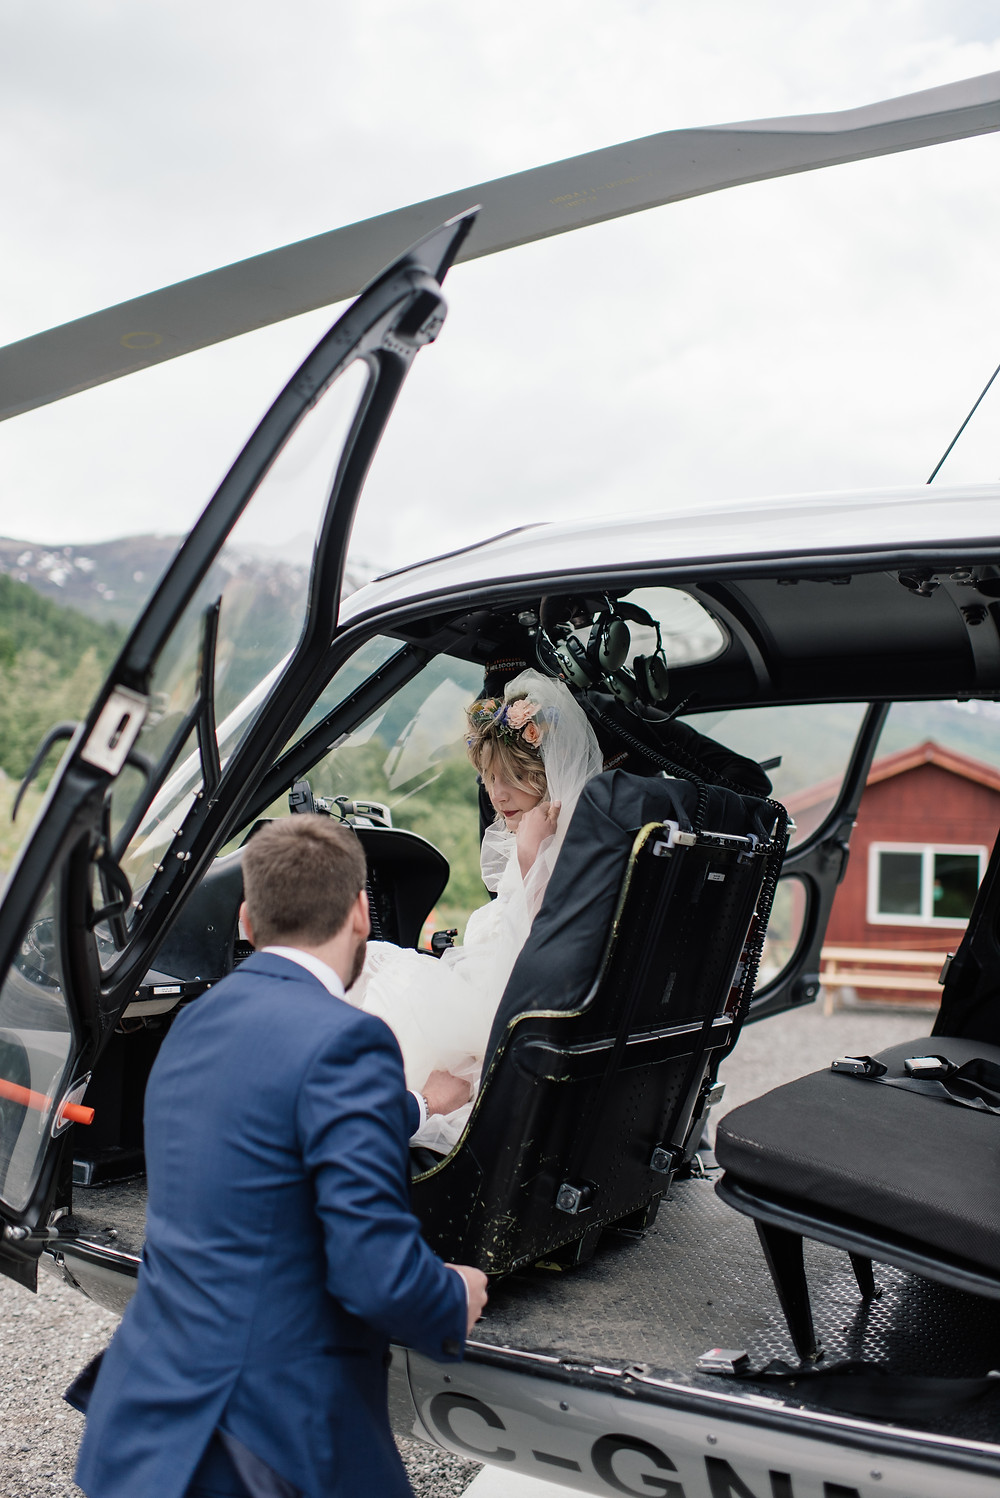 Helicopter flight to alpine location knik river lodge Helicopter ceremony, Elope to Alaska with guests, private and remote location